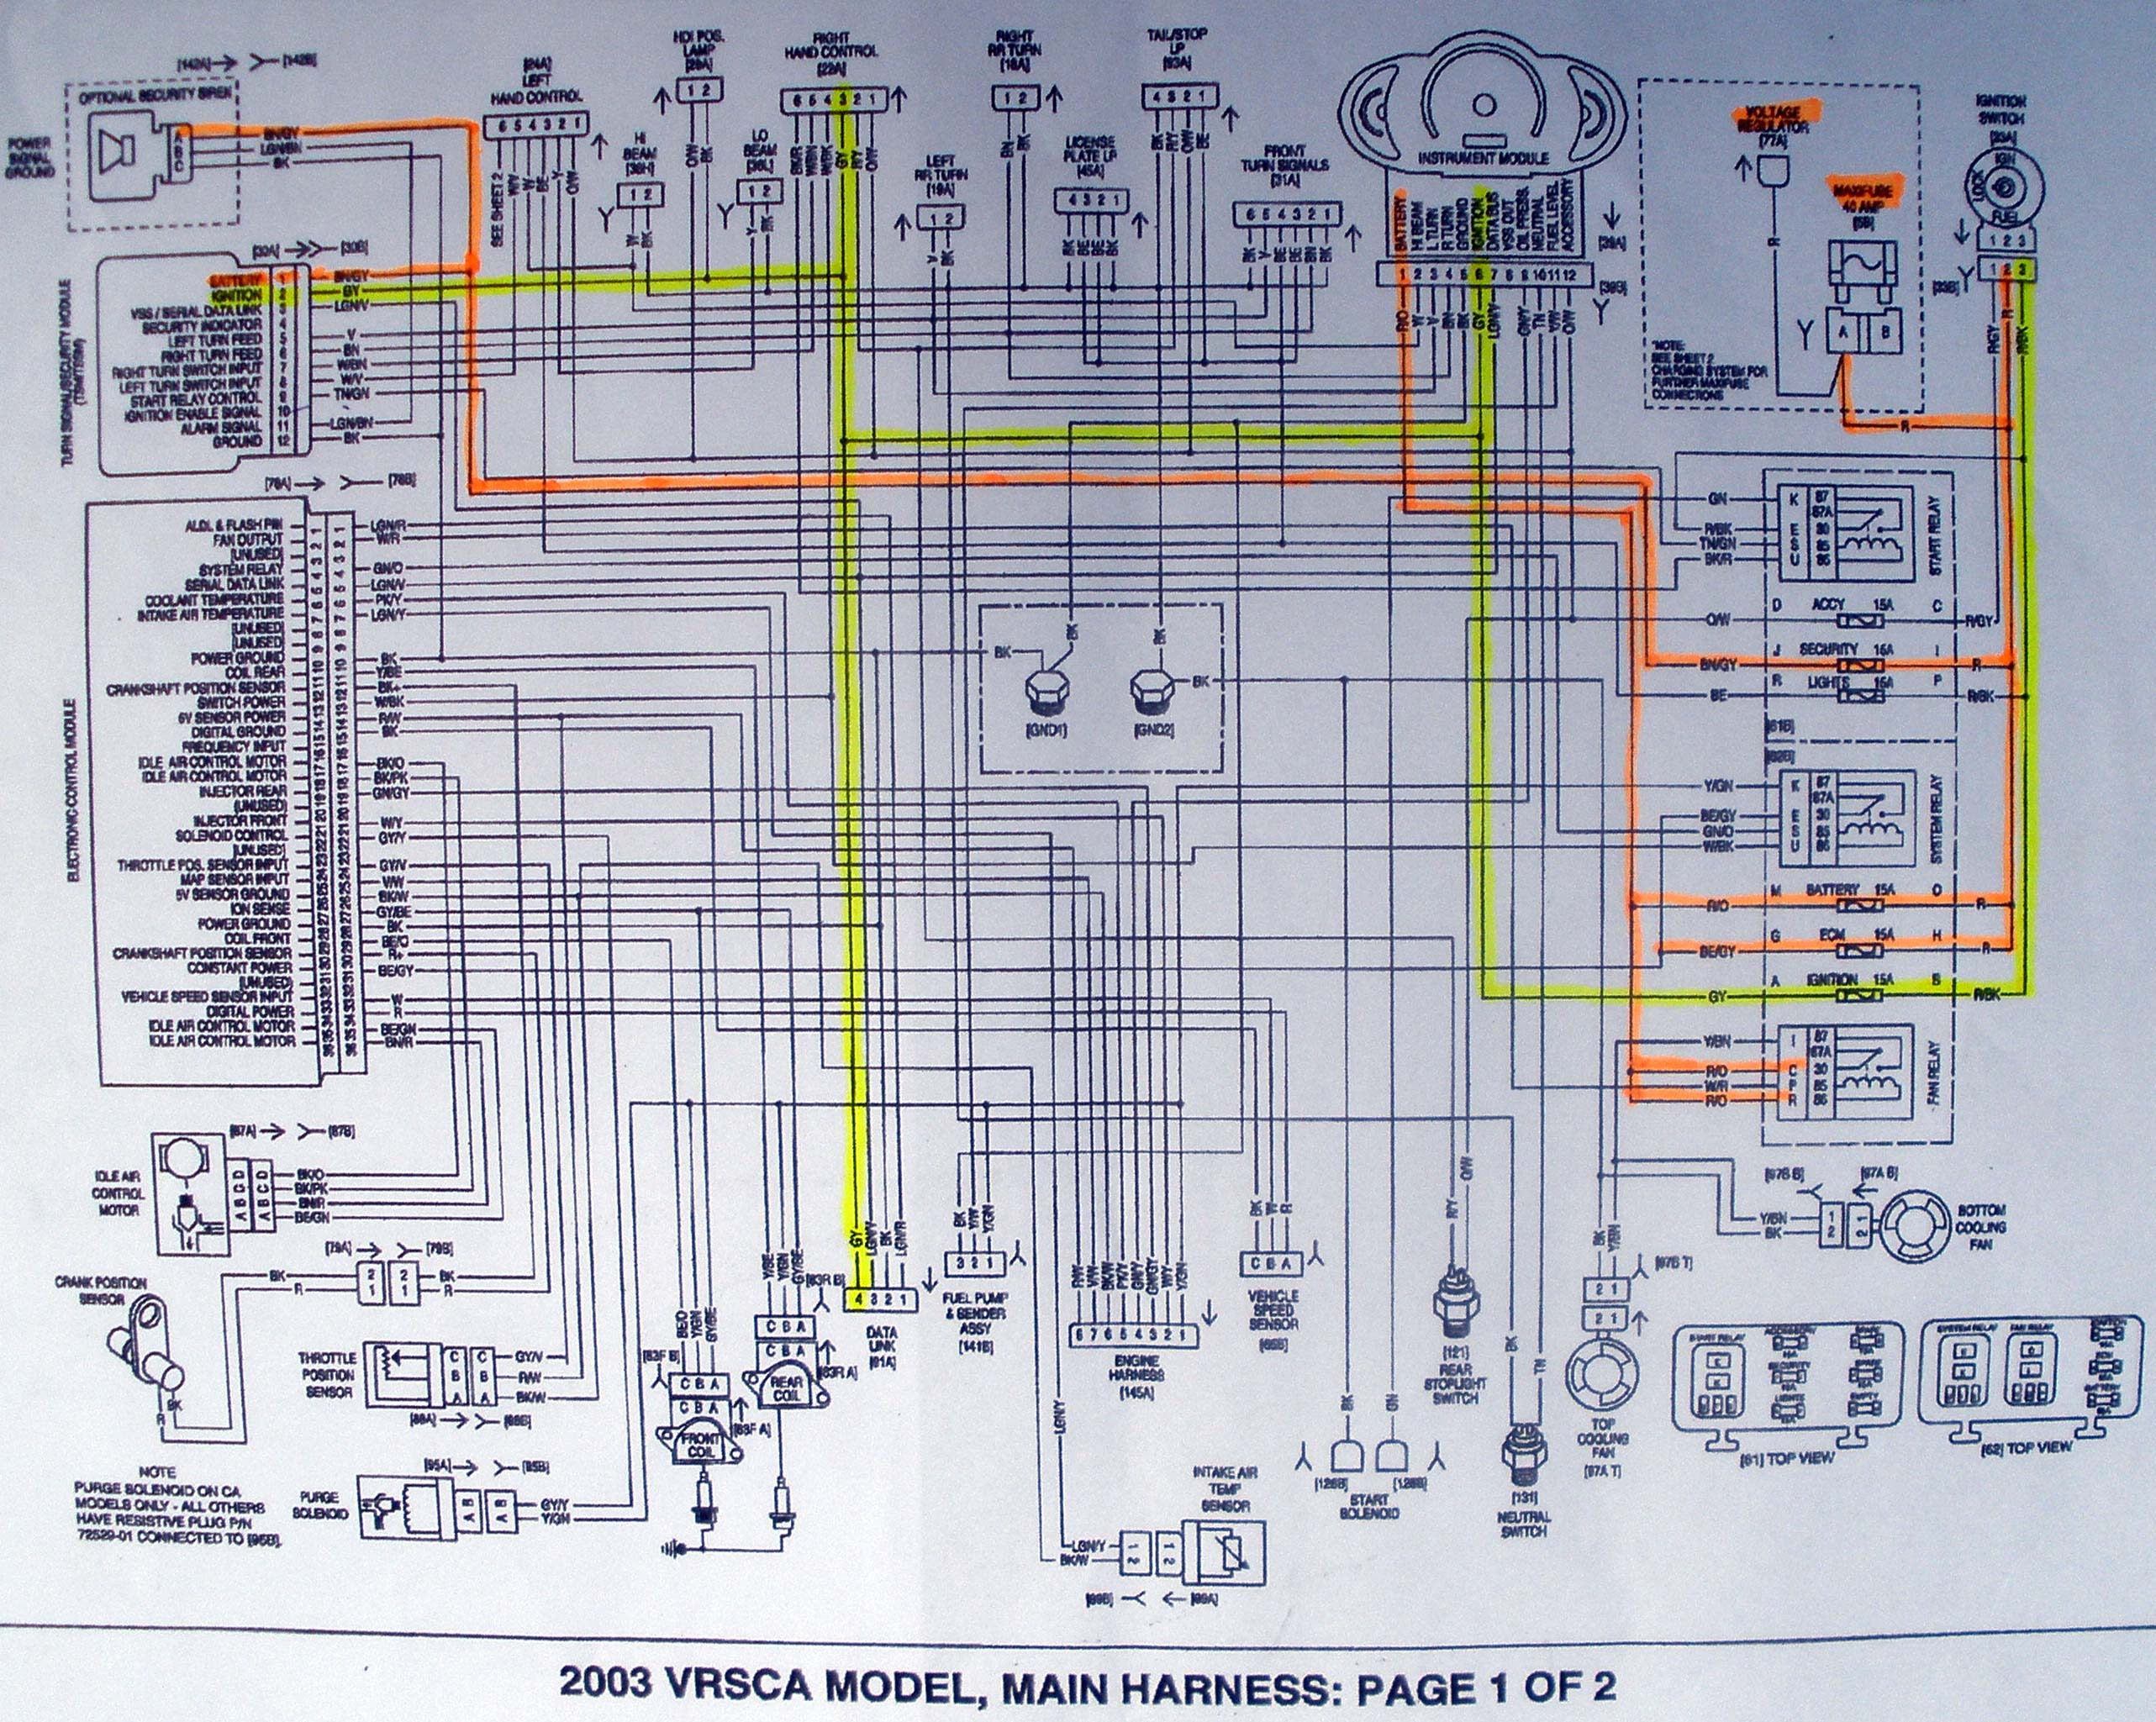 2008 yamaha r6 wiring diagram 1990 ezgo marathon index of v rod